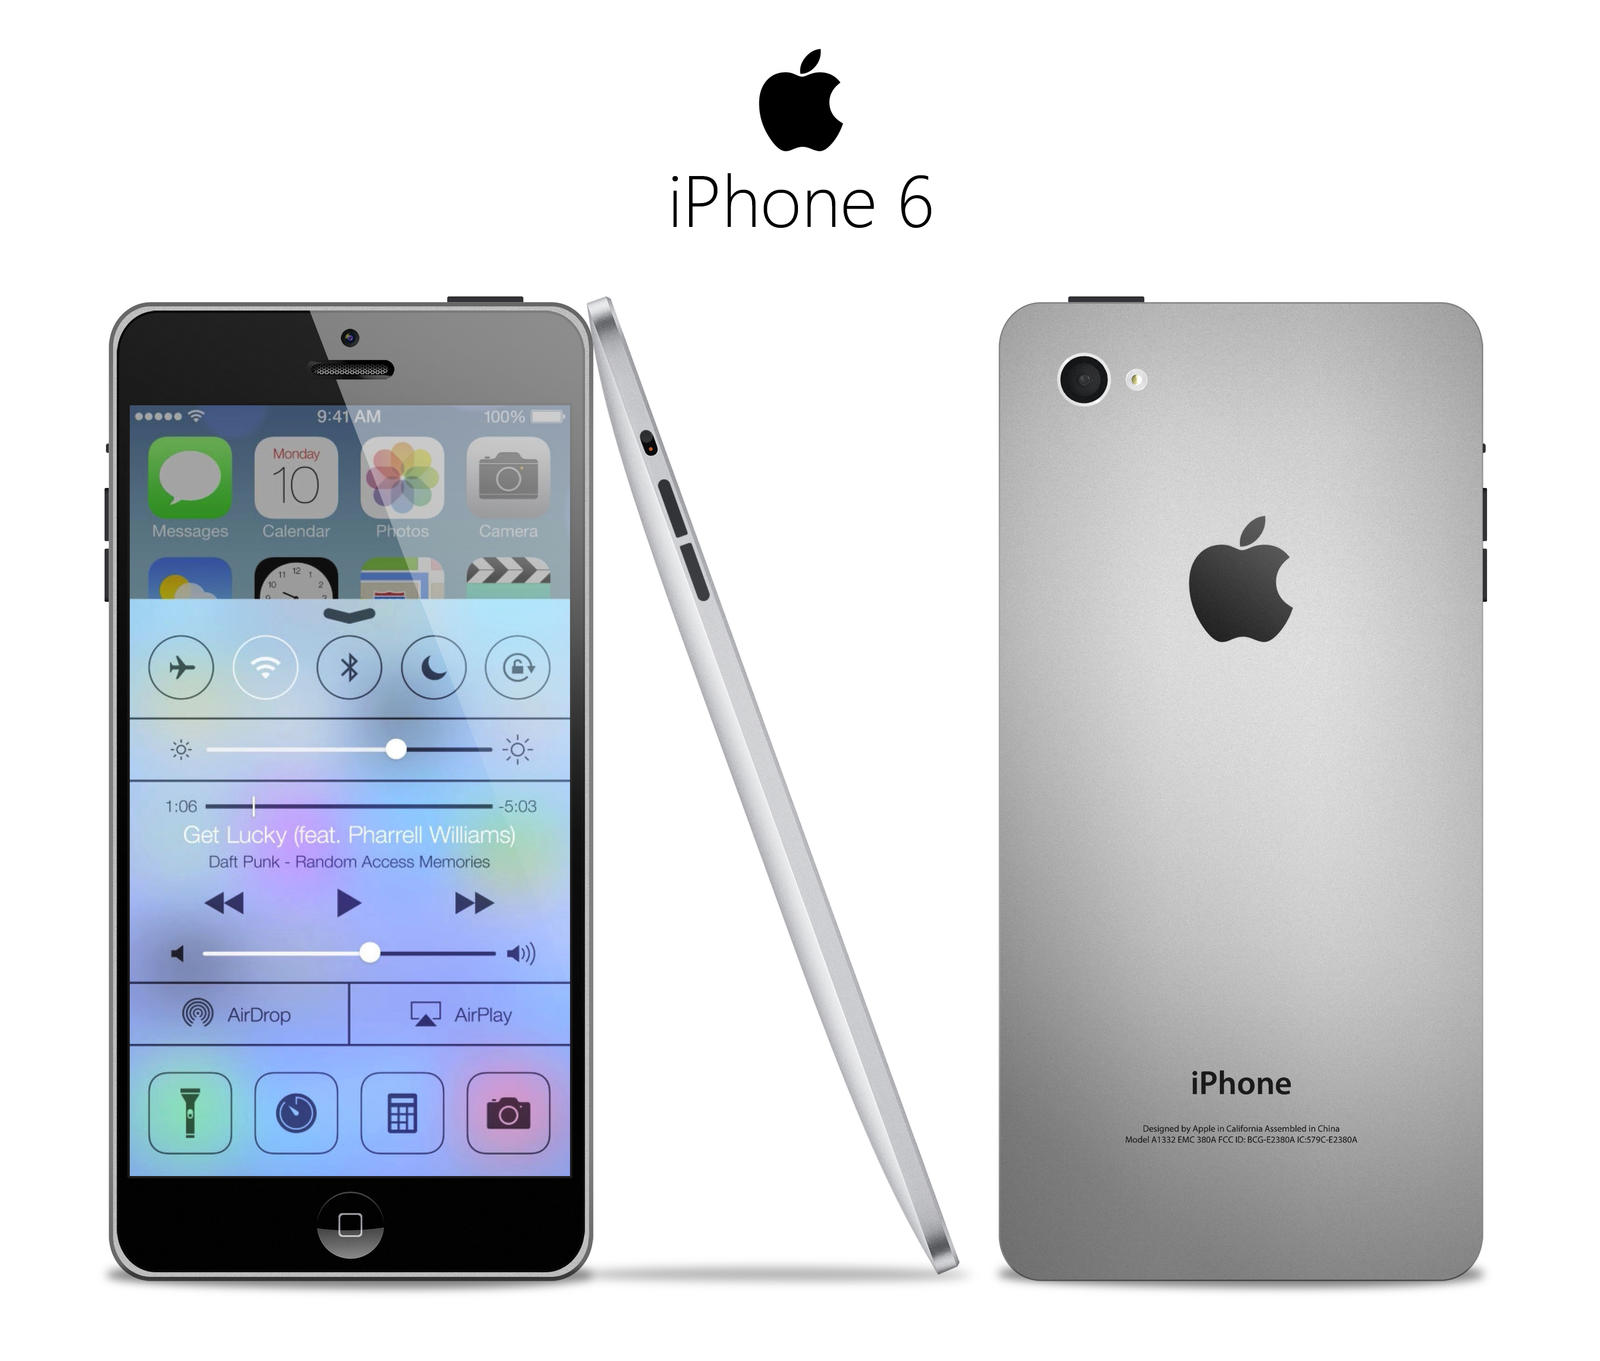 iPhone 6 Concept by iNasko